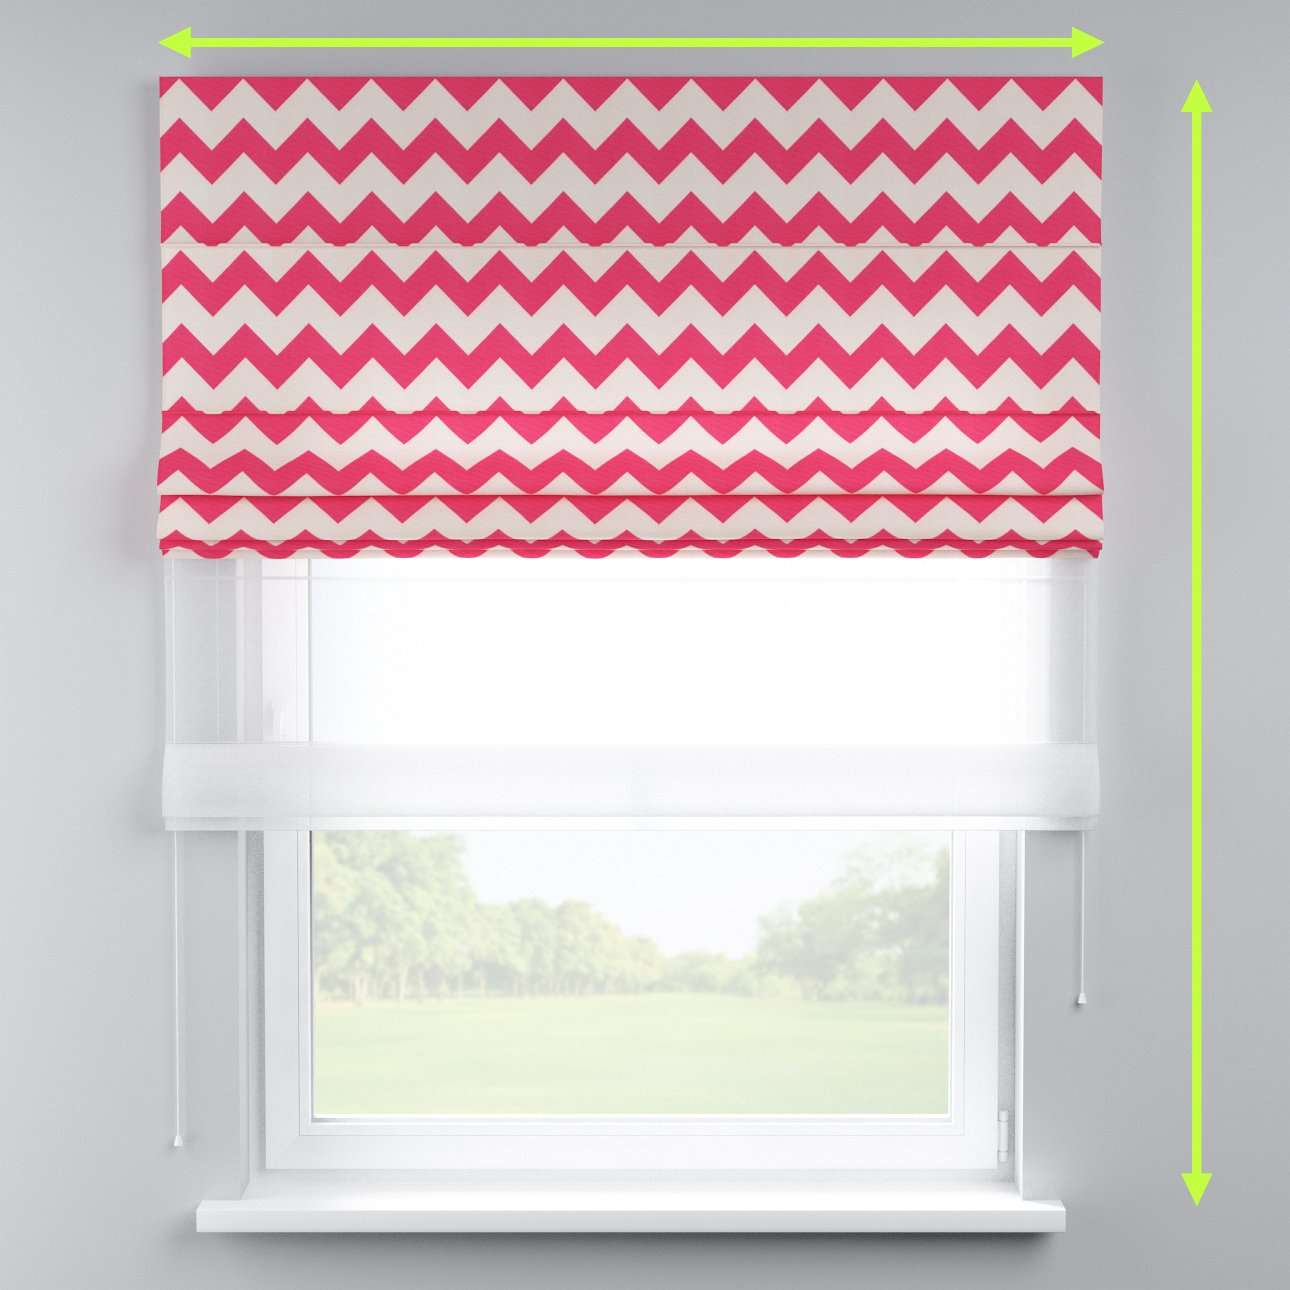 Voile and fabric roman blind (DUO II) in collection Comic Book & Geo Prints, fabric: 135-00